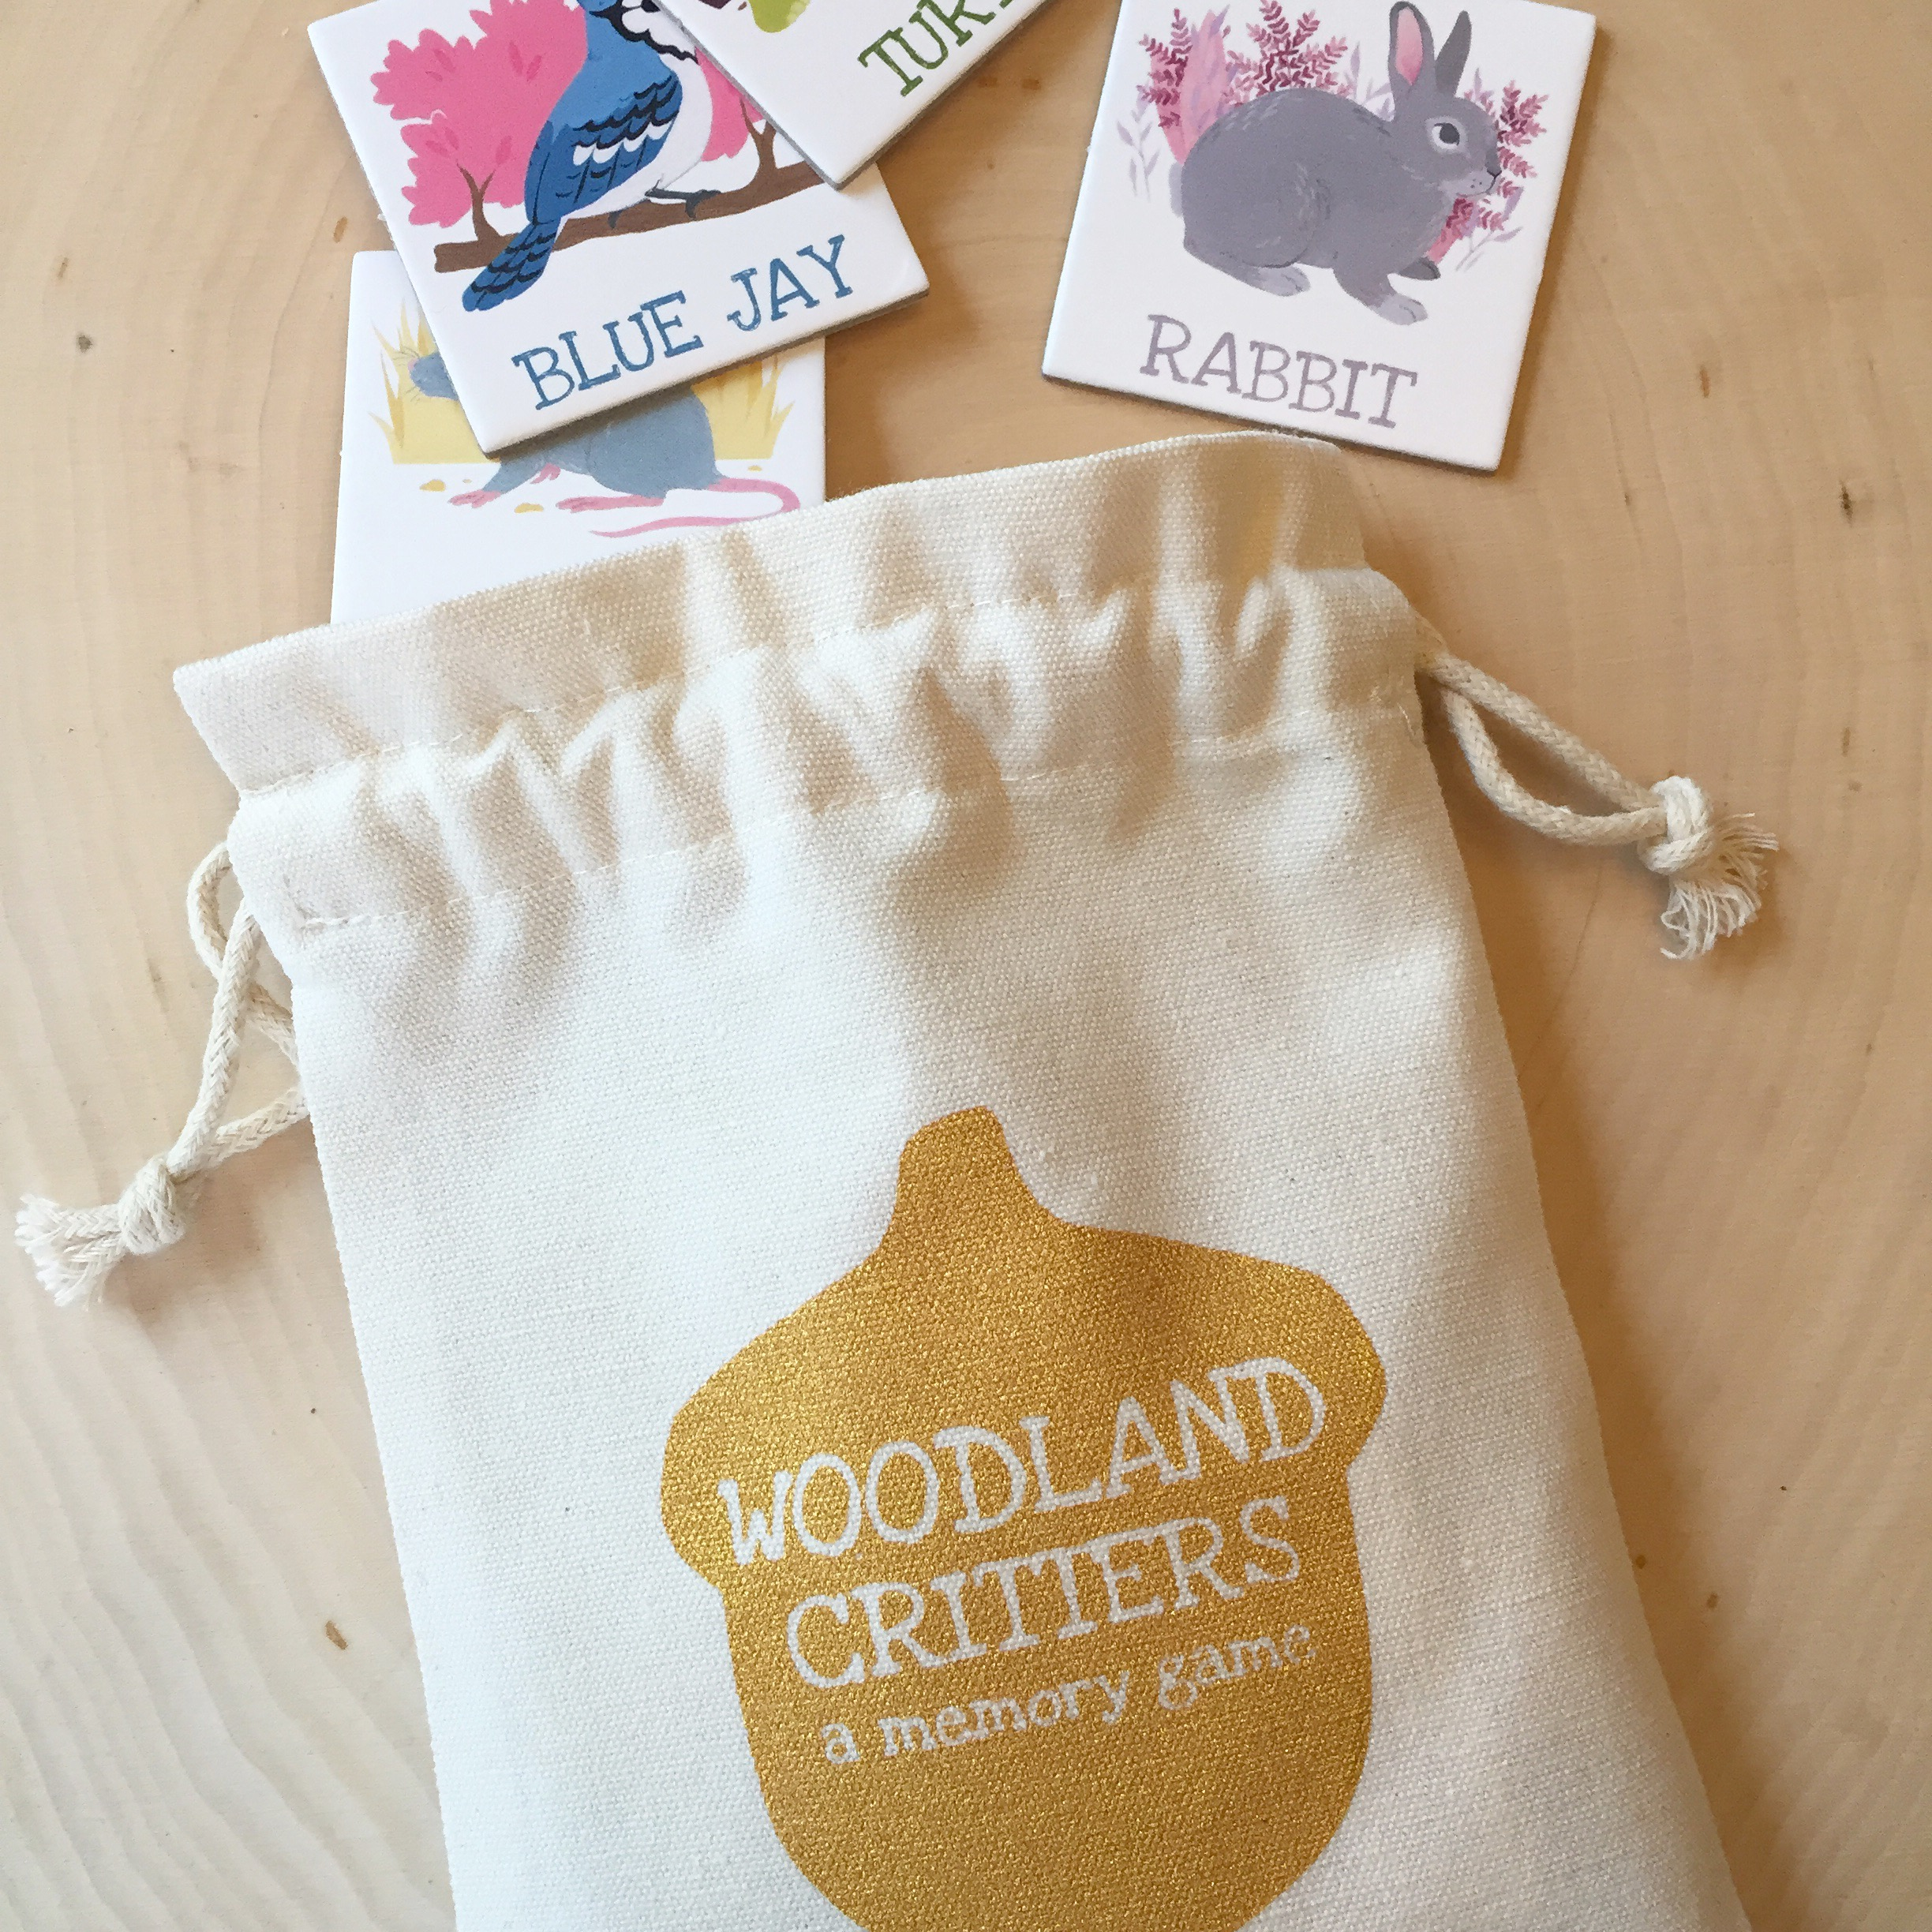 Woodland CRitters - Woodland Critters is a simple learning game for those young at heart. Whimsical woodland animals adorn each tile with corresponding text for fun word association. This enchanting memory game comes complete with 12 matching pairs, 24 tiles in total.